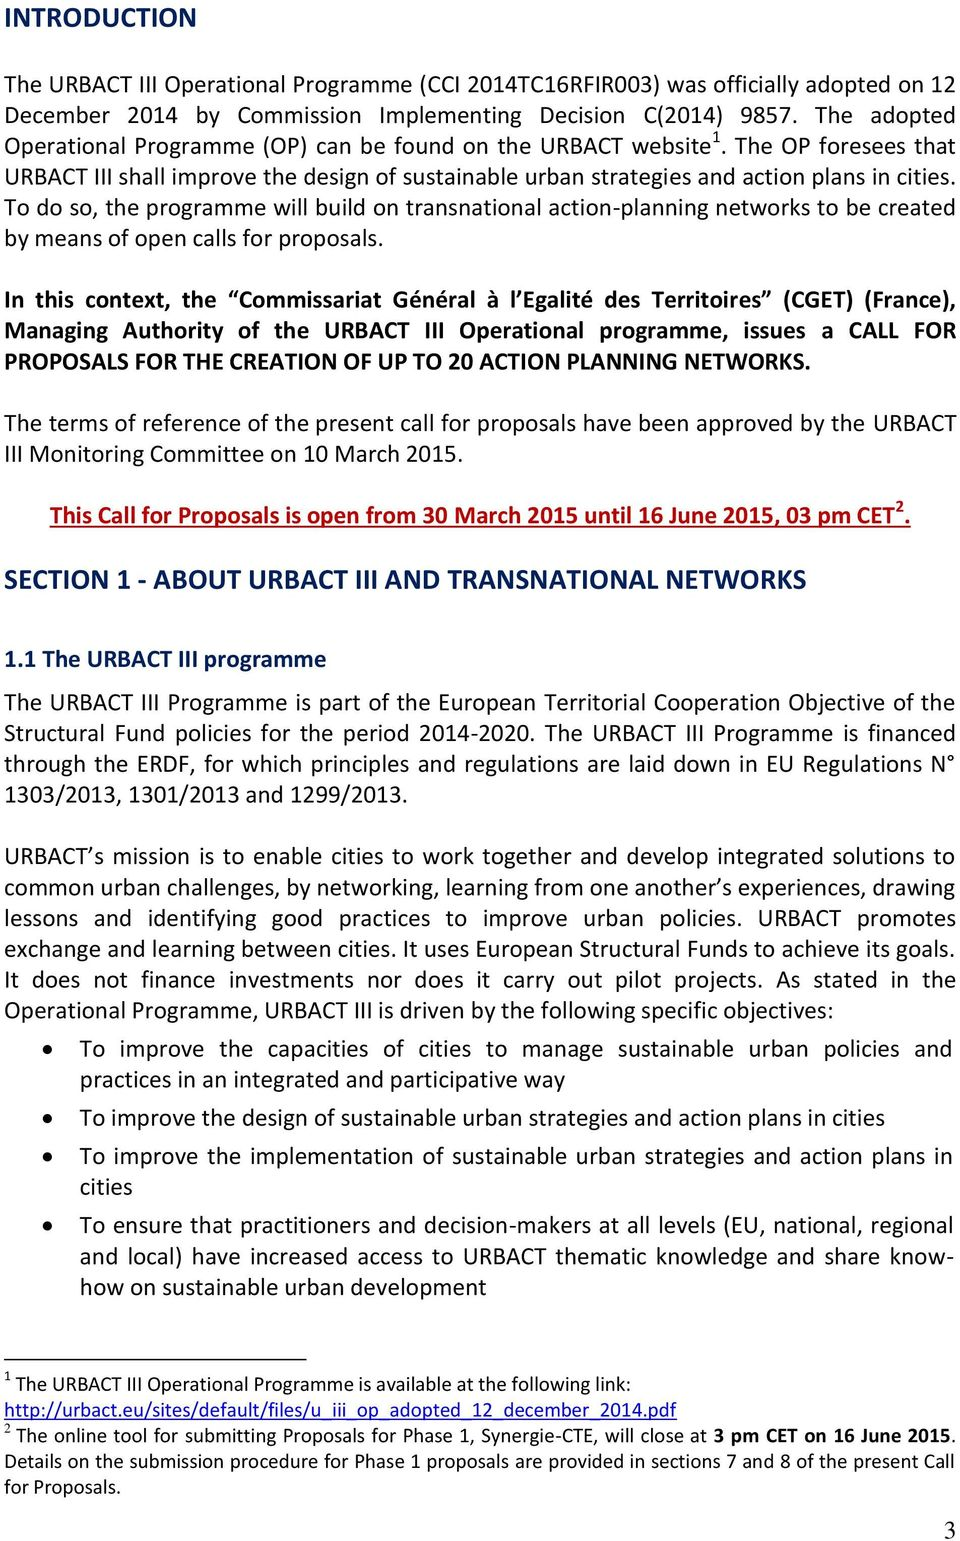 To do so, the programme will build on transnational action-planning networks to be created by means of open calls for proposals.